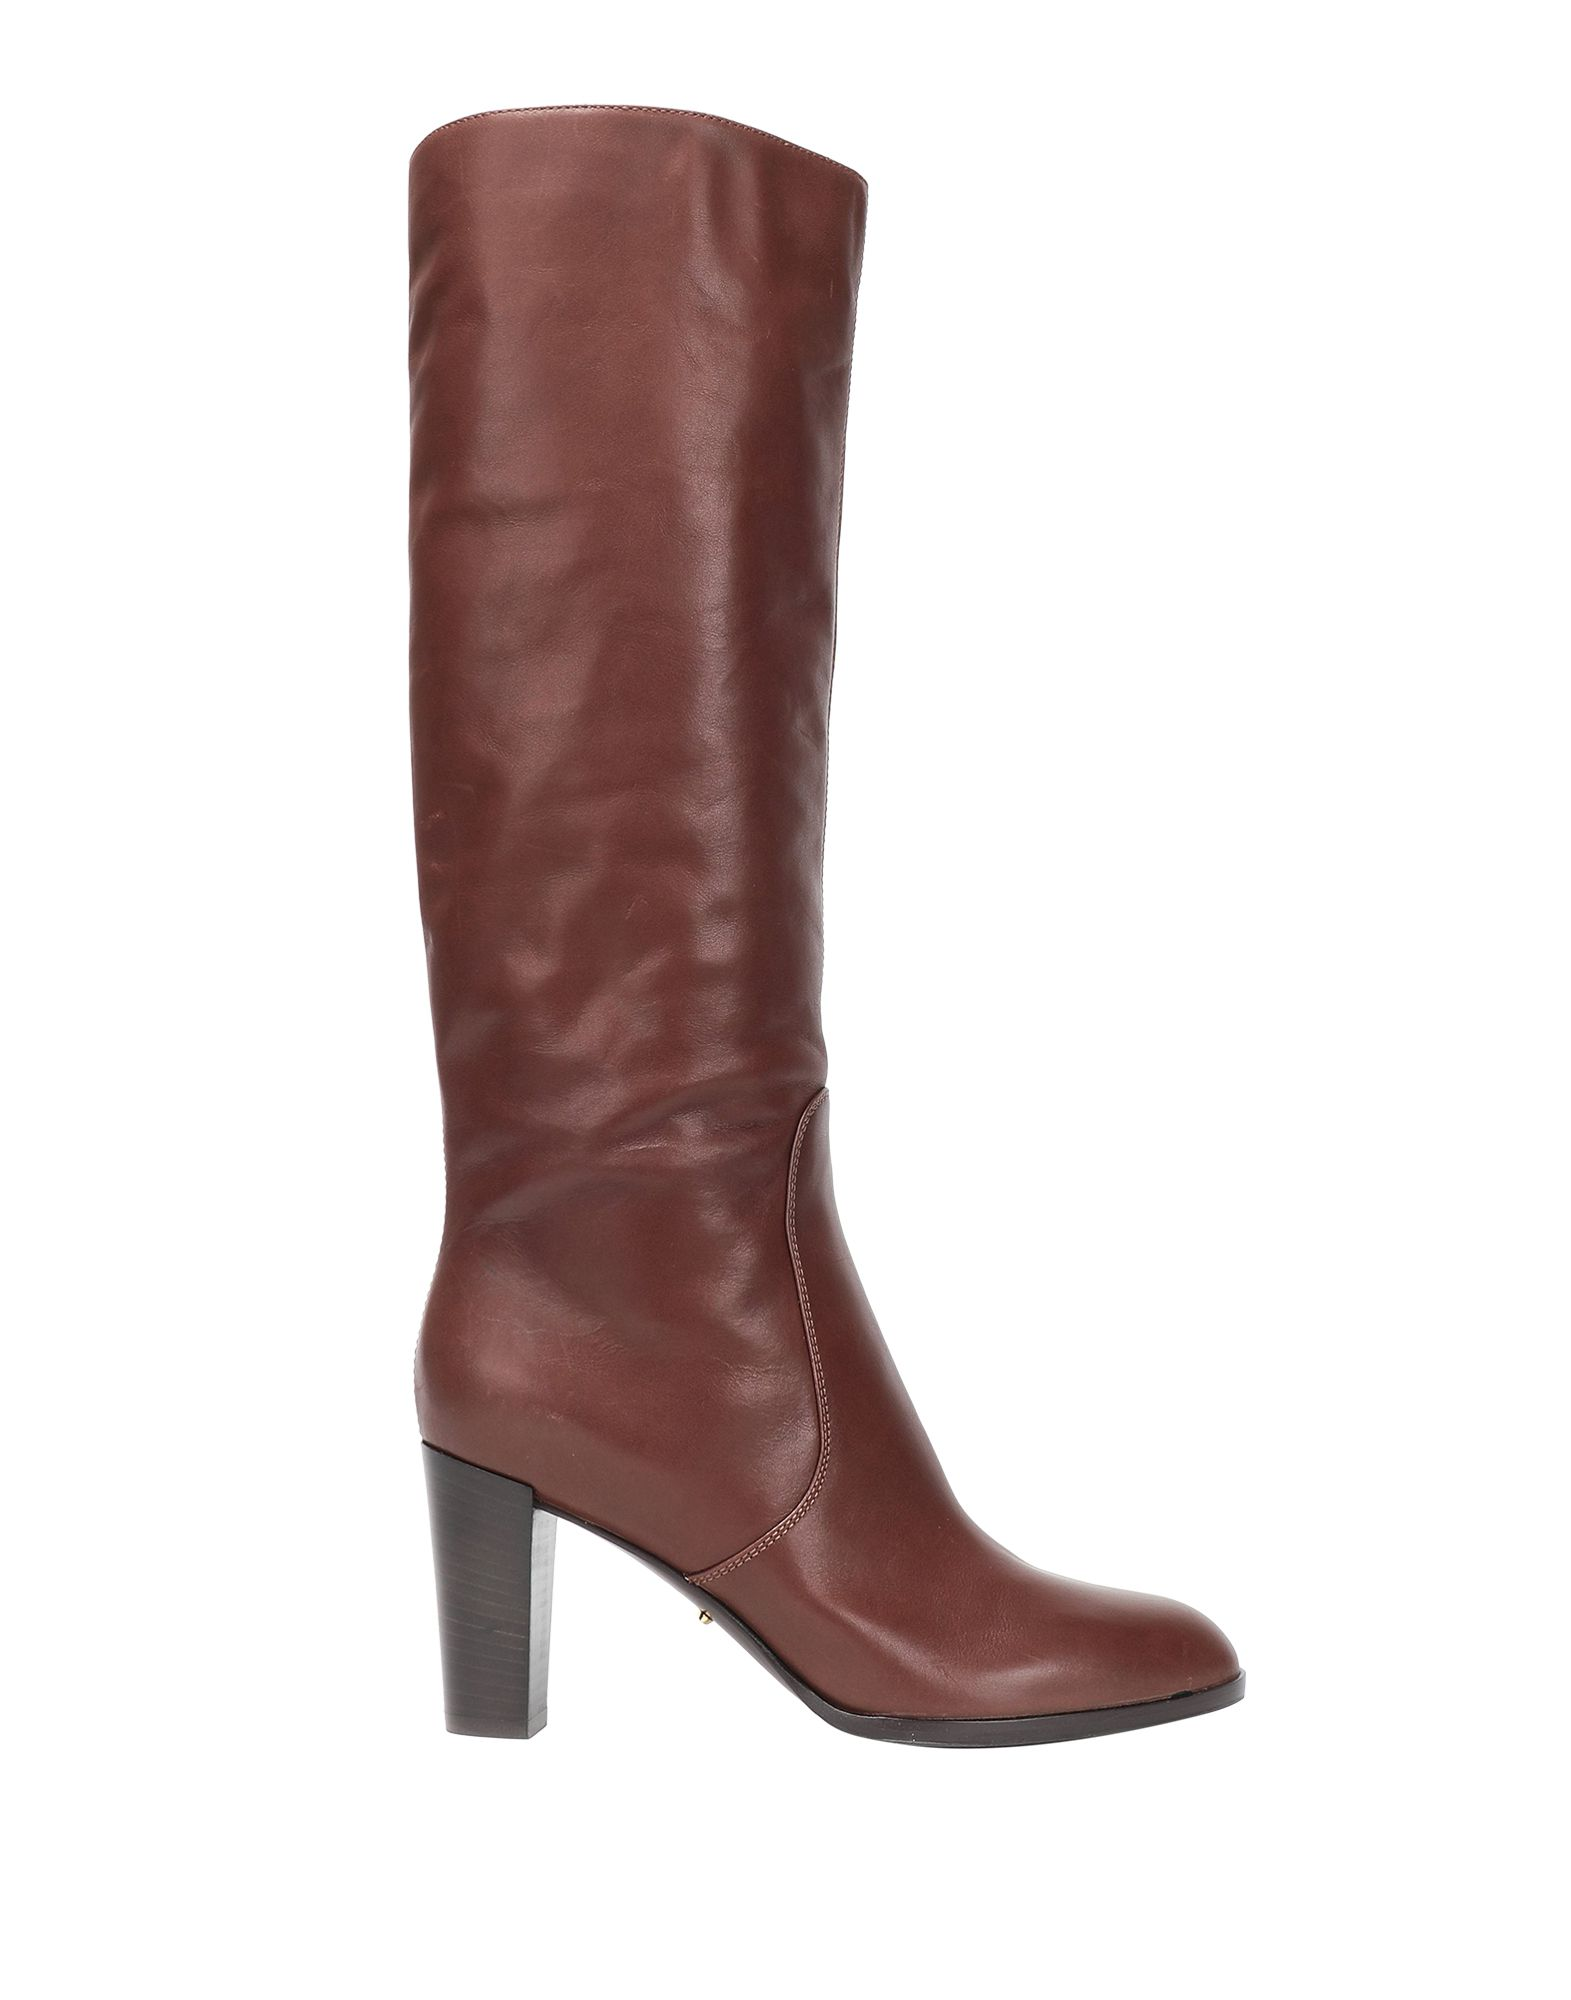 Sergio Rossi Boots Boots - Women Sergio Rossi Boots Boots online on  United Kingdom - 11526070IT e1ebaf